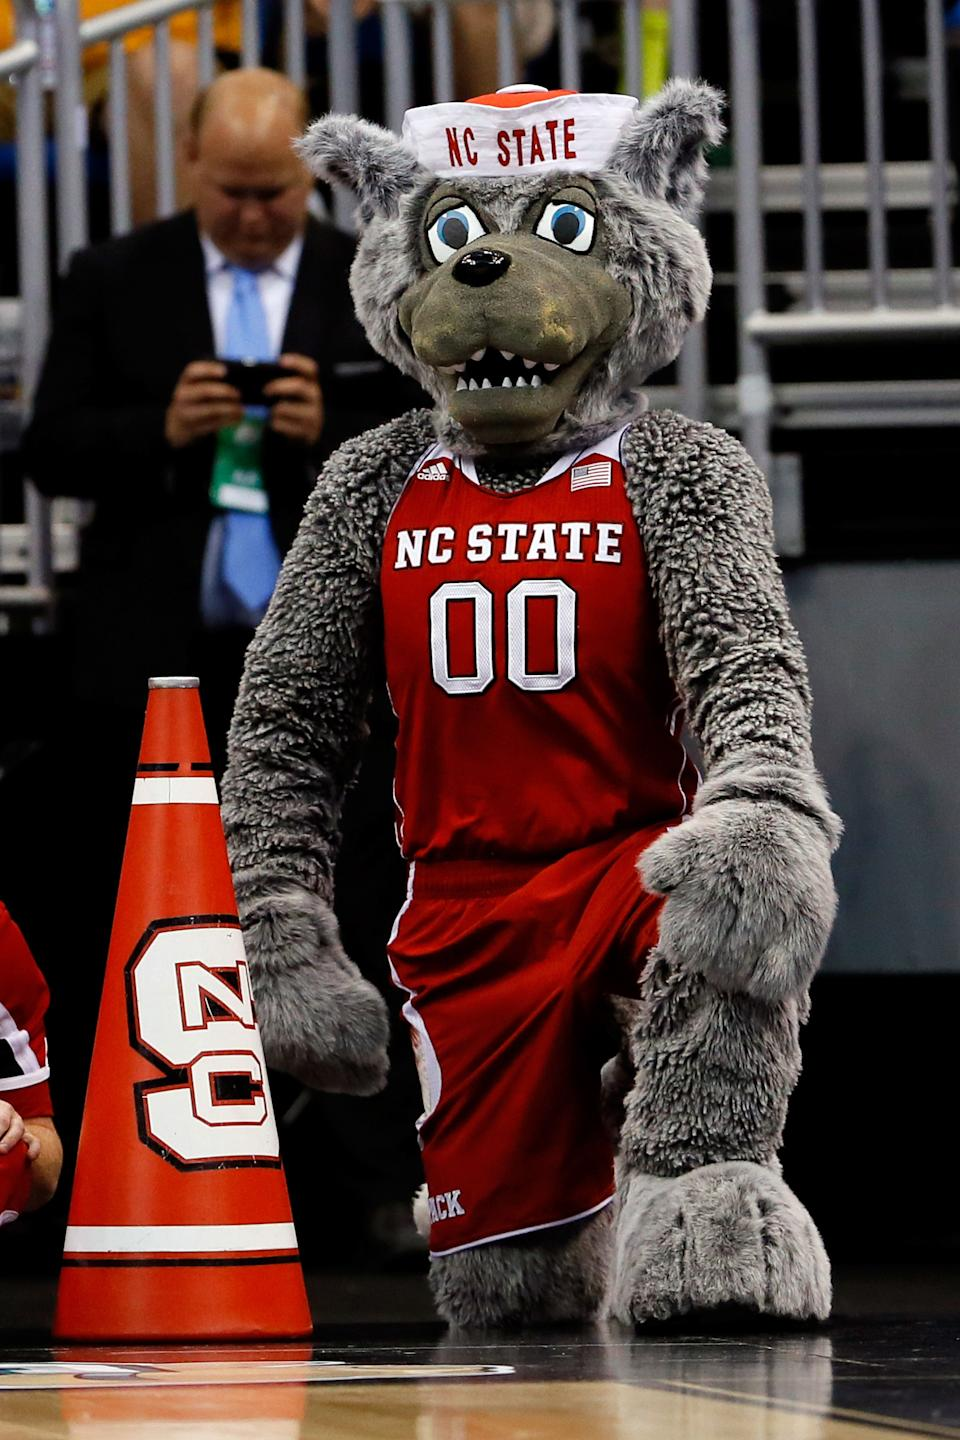 ORLANDO, FL - MARCH 20:  North Carolina State Wolfpack mascot cheers against the Saint Louis Billikens during the second round of the 2014 NCAA Men's Basketball Tournament at Amway Center on March 20, 2014 in Orlando, Florida.  (Photo by Kevin C. Cox/Getty Images)